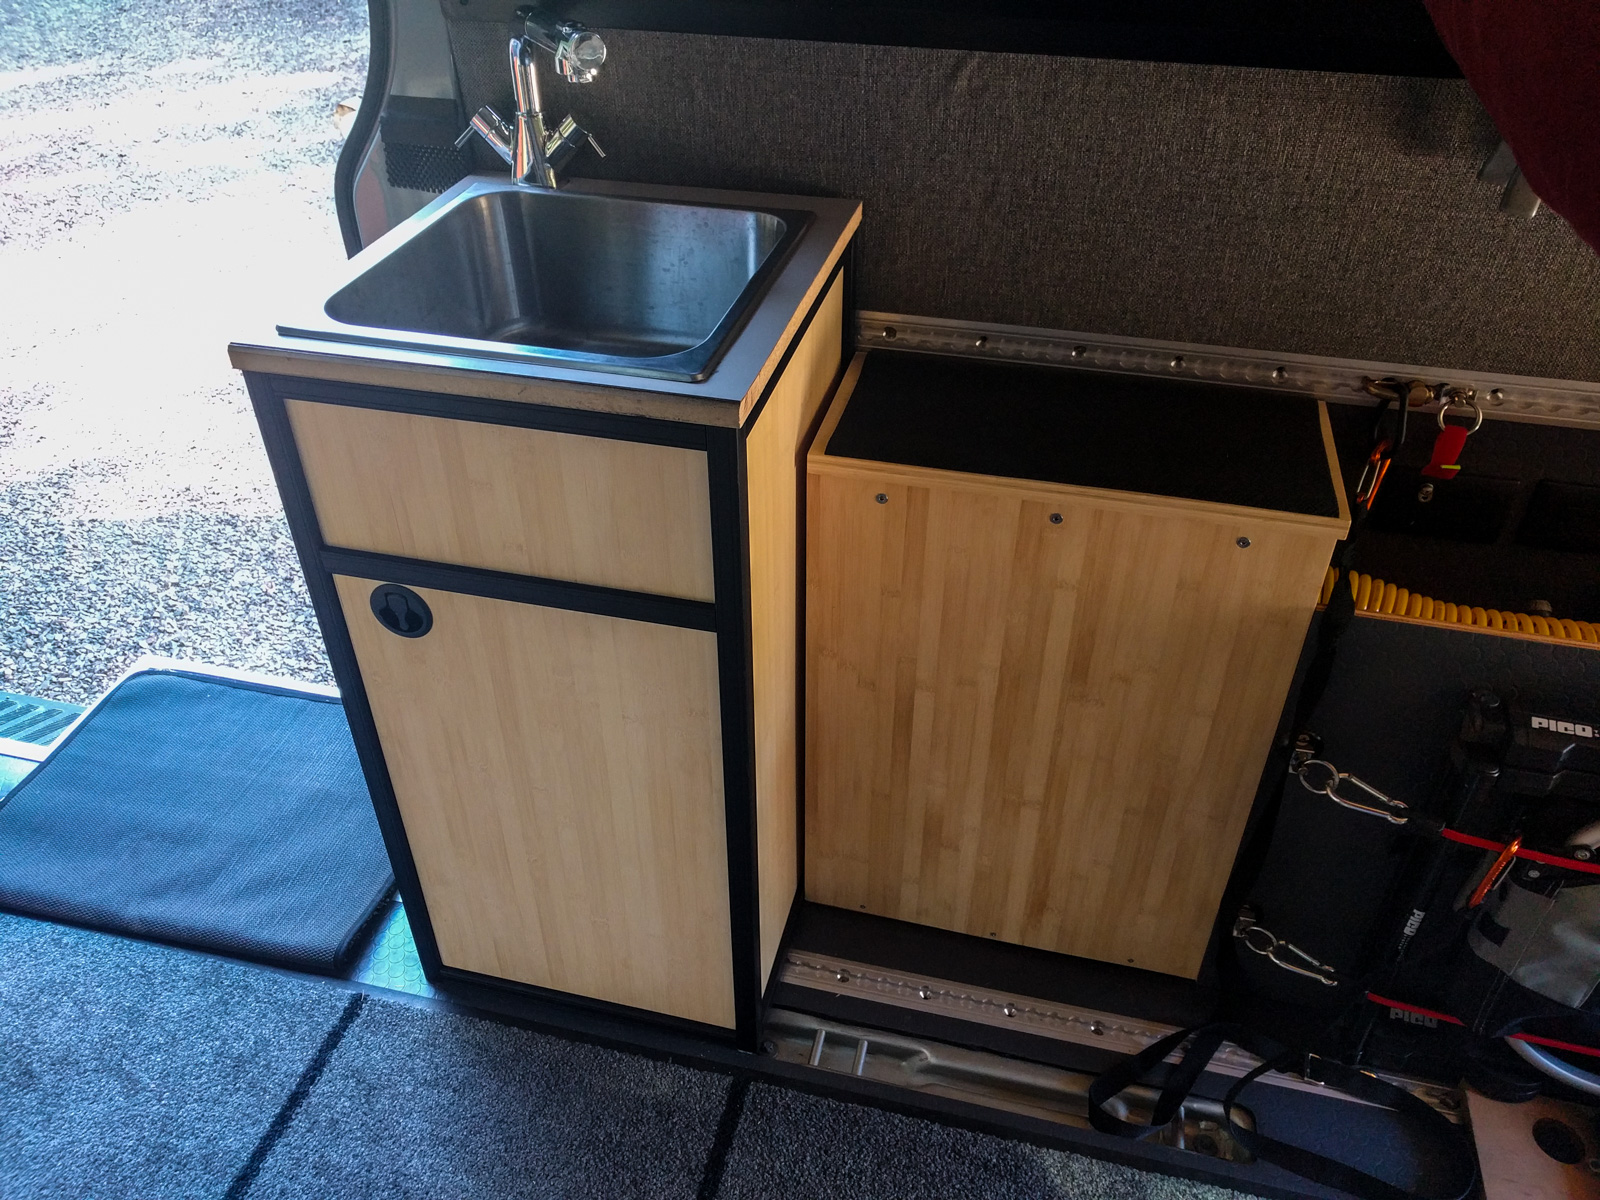 Sink cabinet built from 80/20 aluminum extrusion